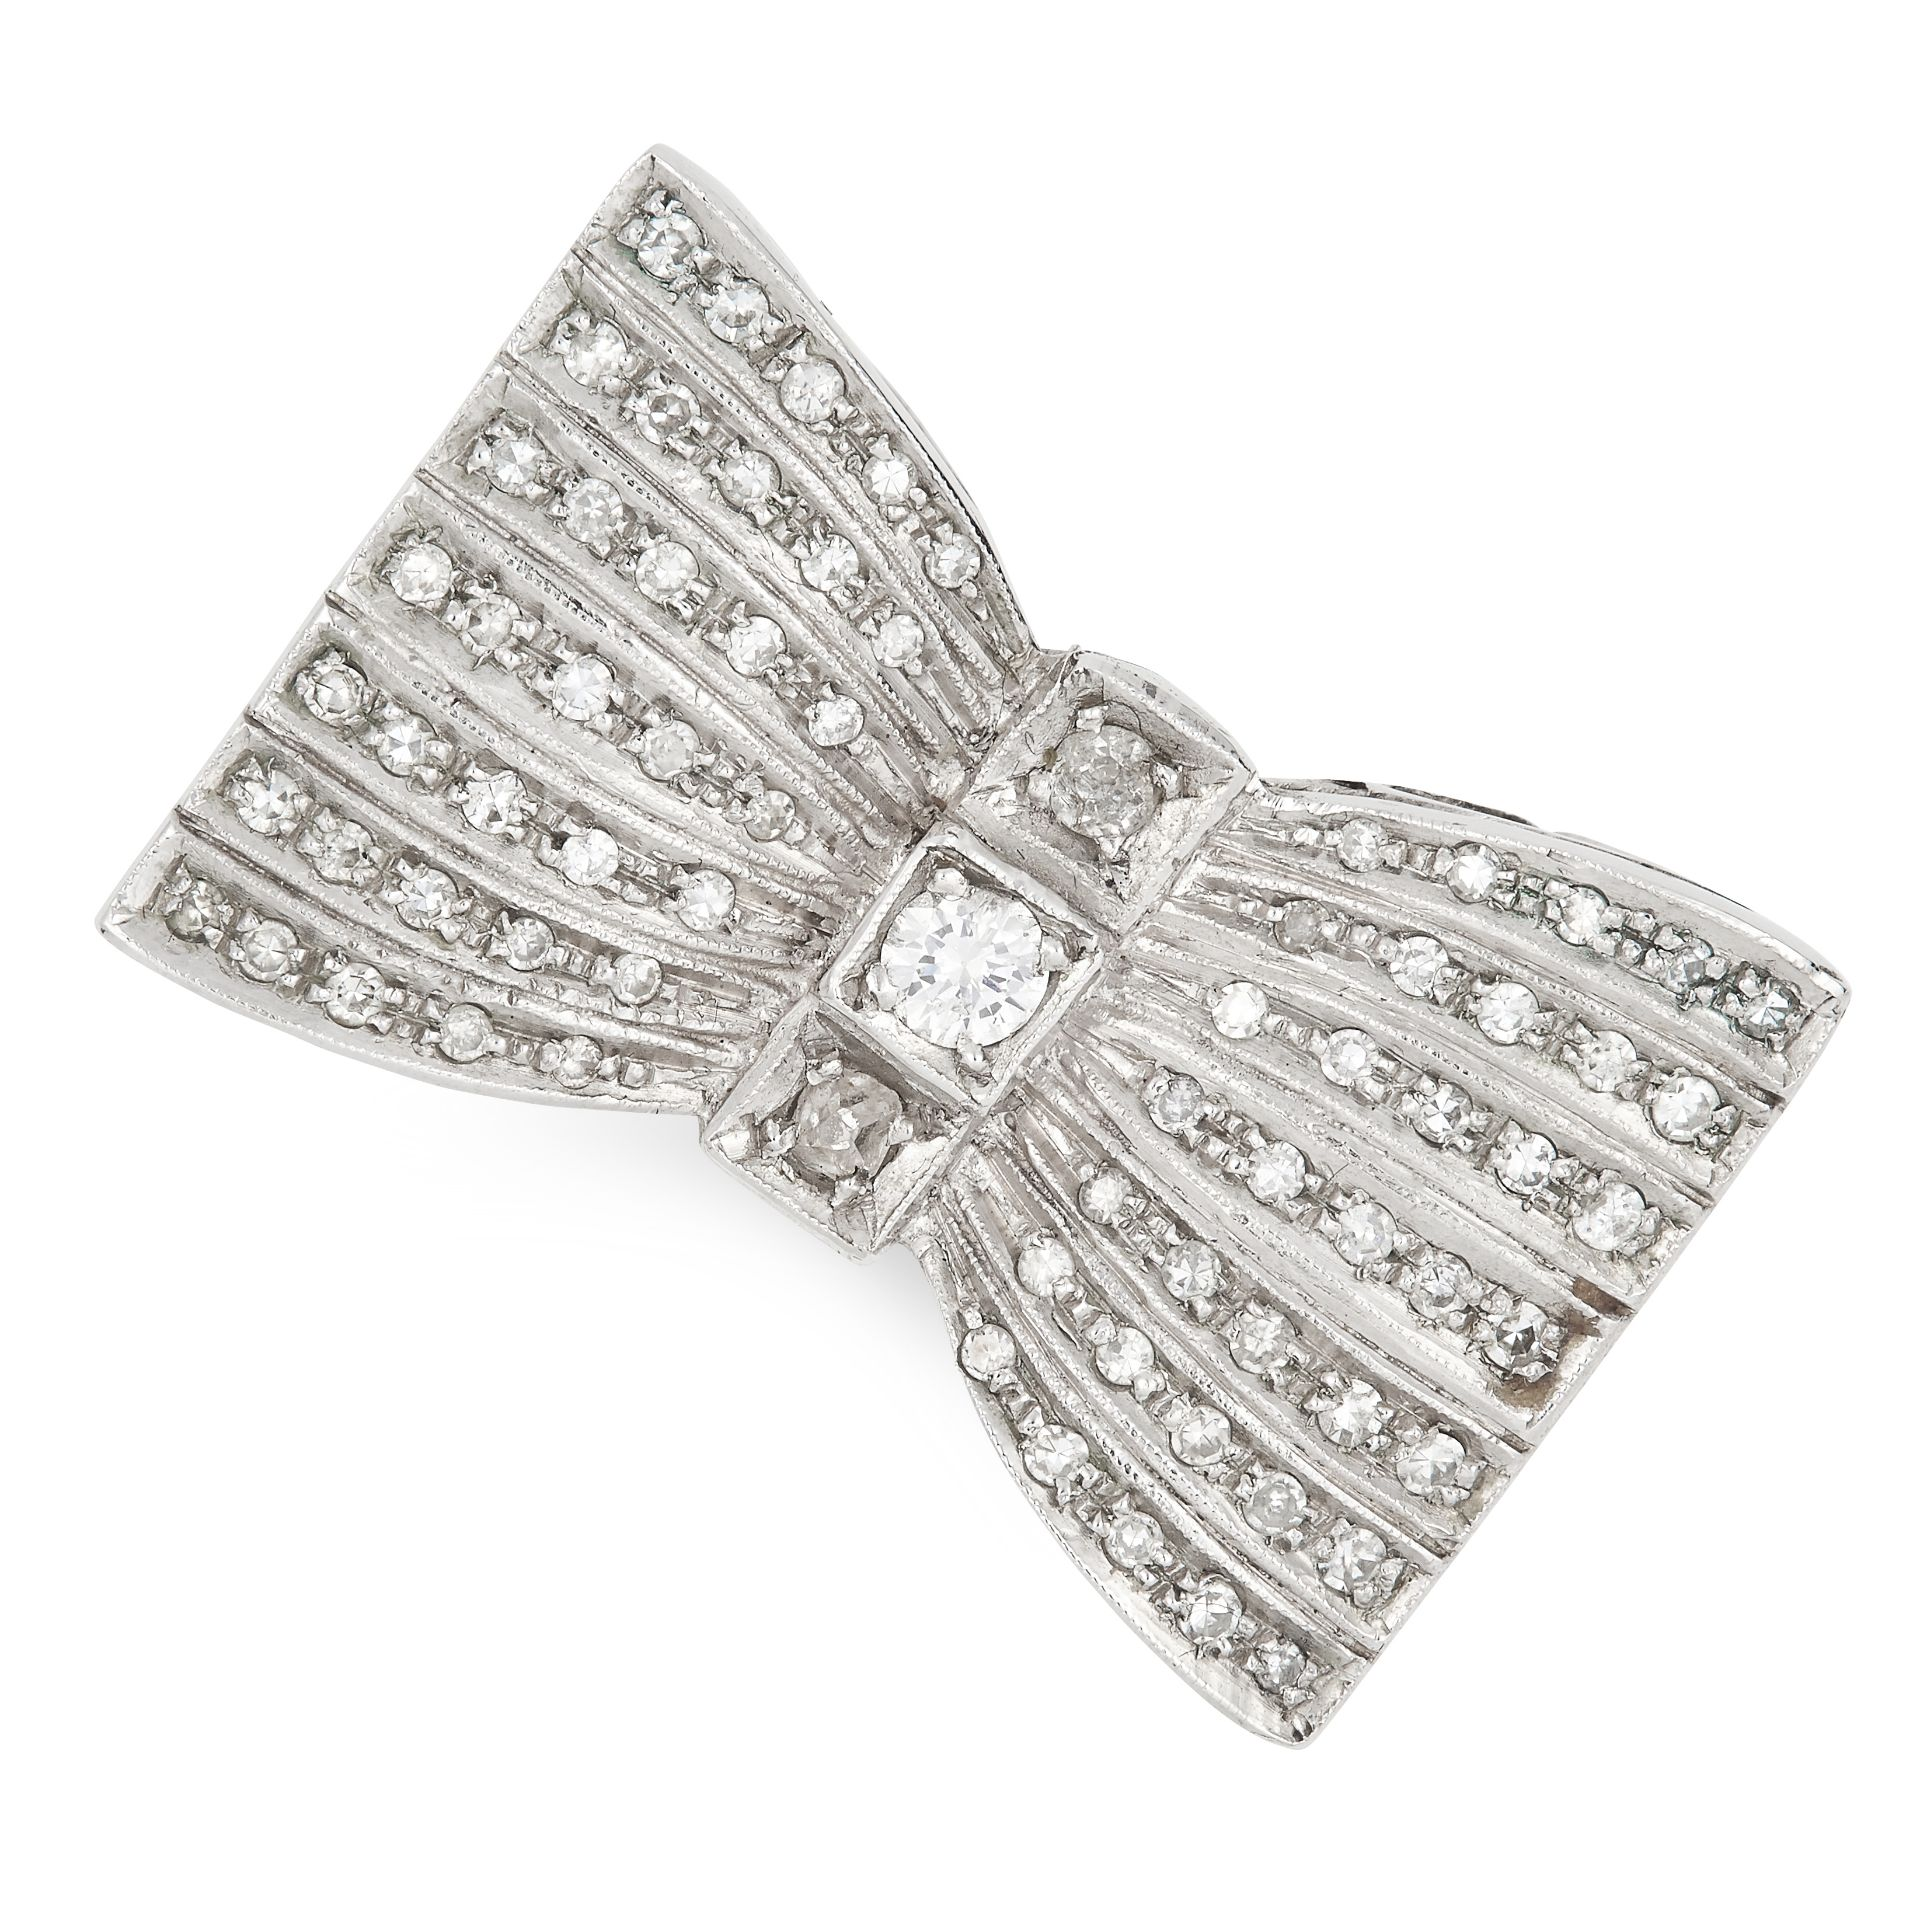 A DIAMOND BOW RING, CIRCA 1950 in white gold, designed as a bow, set with round and single cut